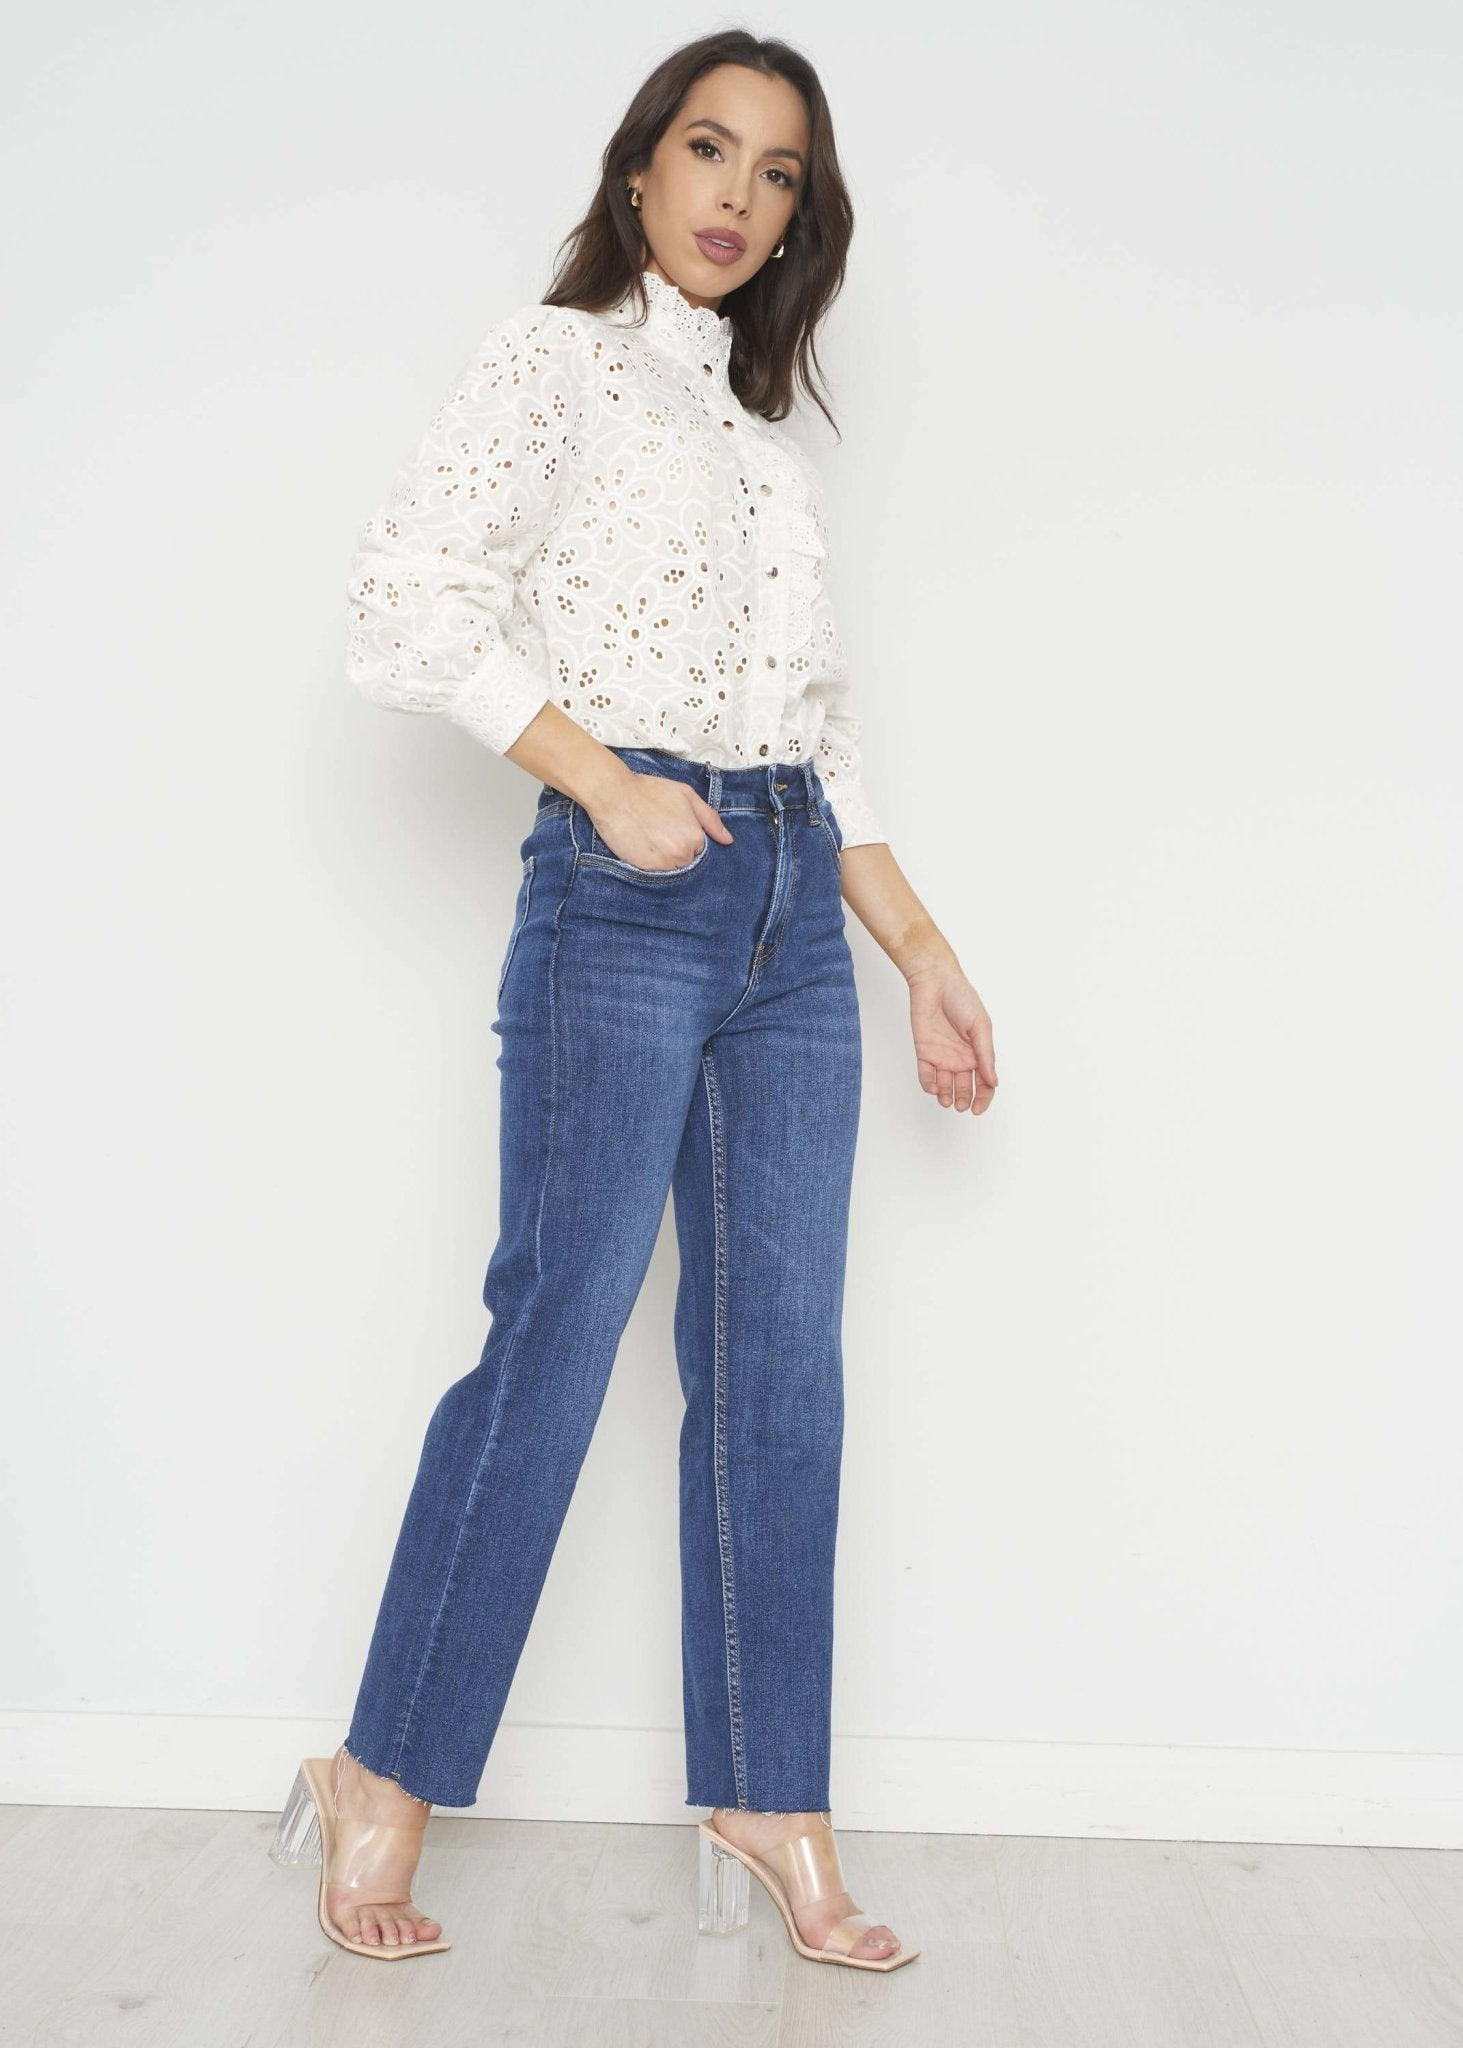 Indie Lace Blouse In White - The Walk in Wardrobe